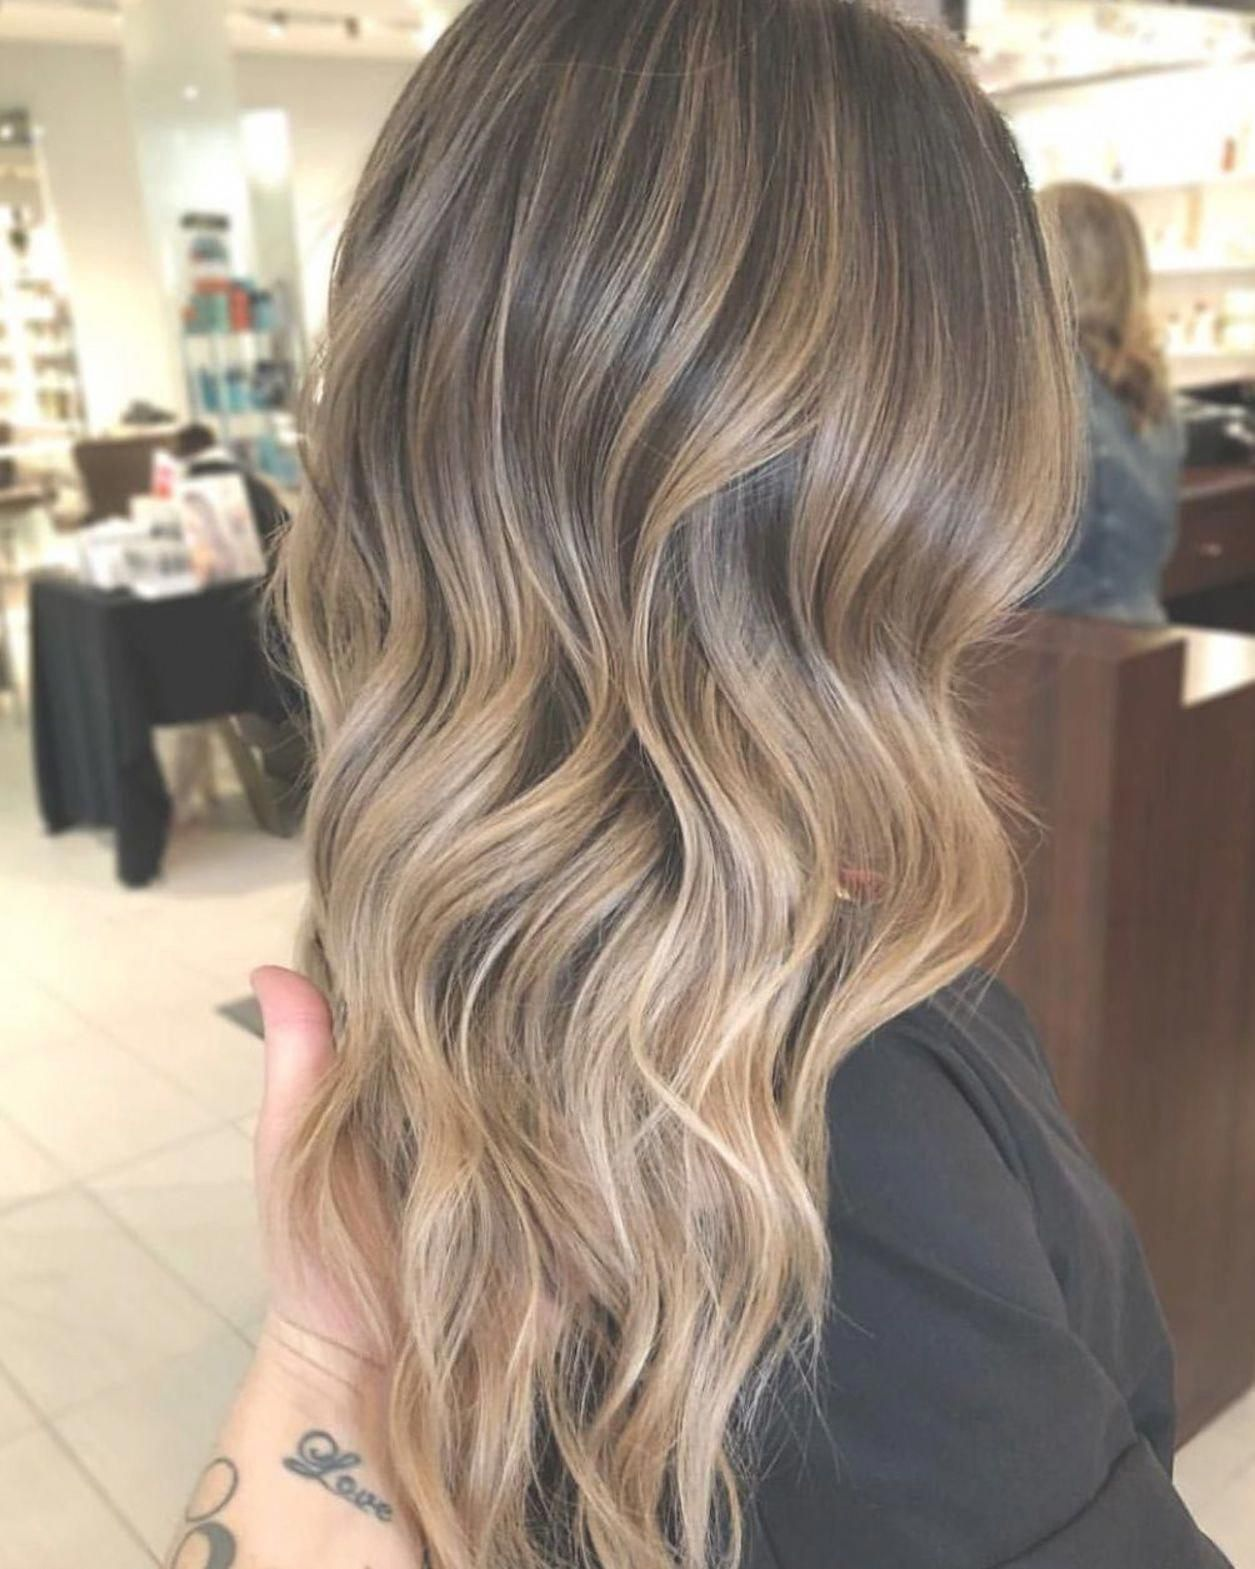 49 Beautiful Light Brown Hair Color For A New Look The Best Hair Colour Ideas For A Change In 2020 Brunette Hair Color Balayage Hair Summer Hair Color For Brunettes